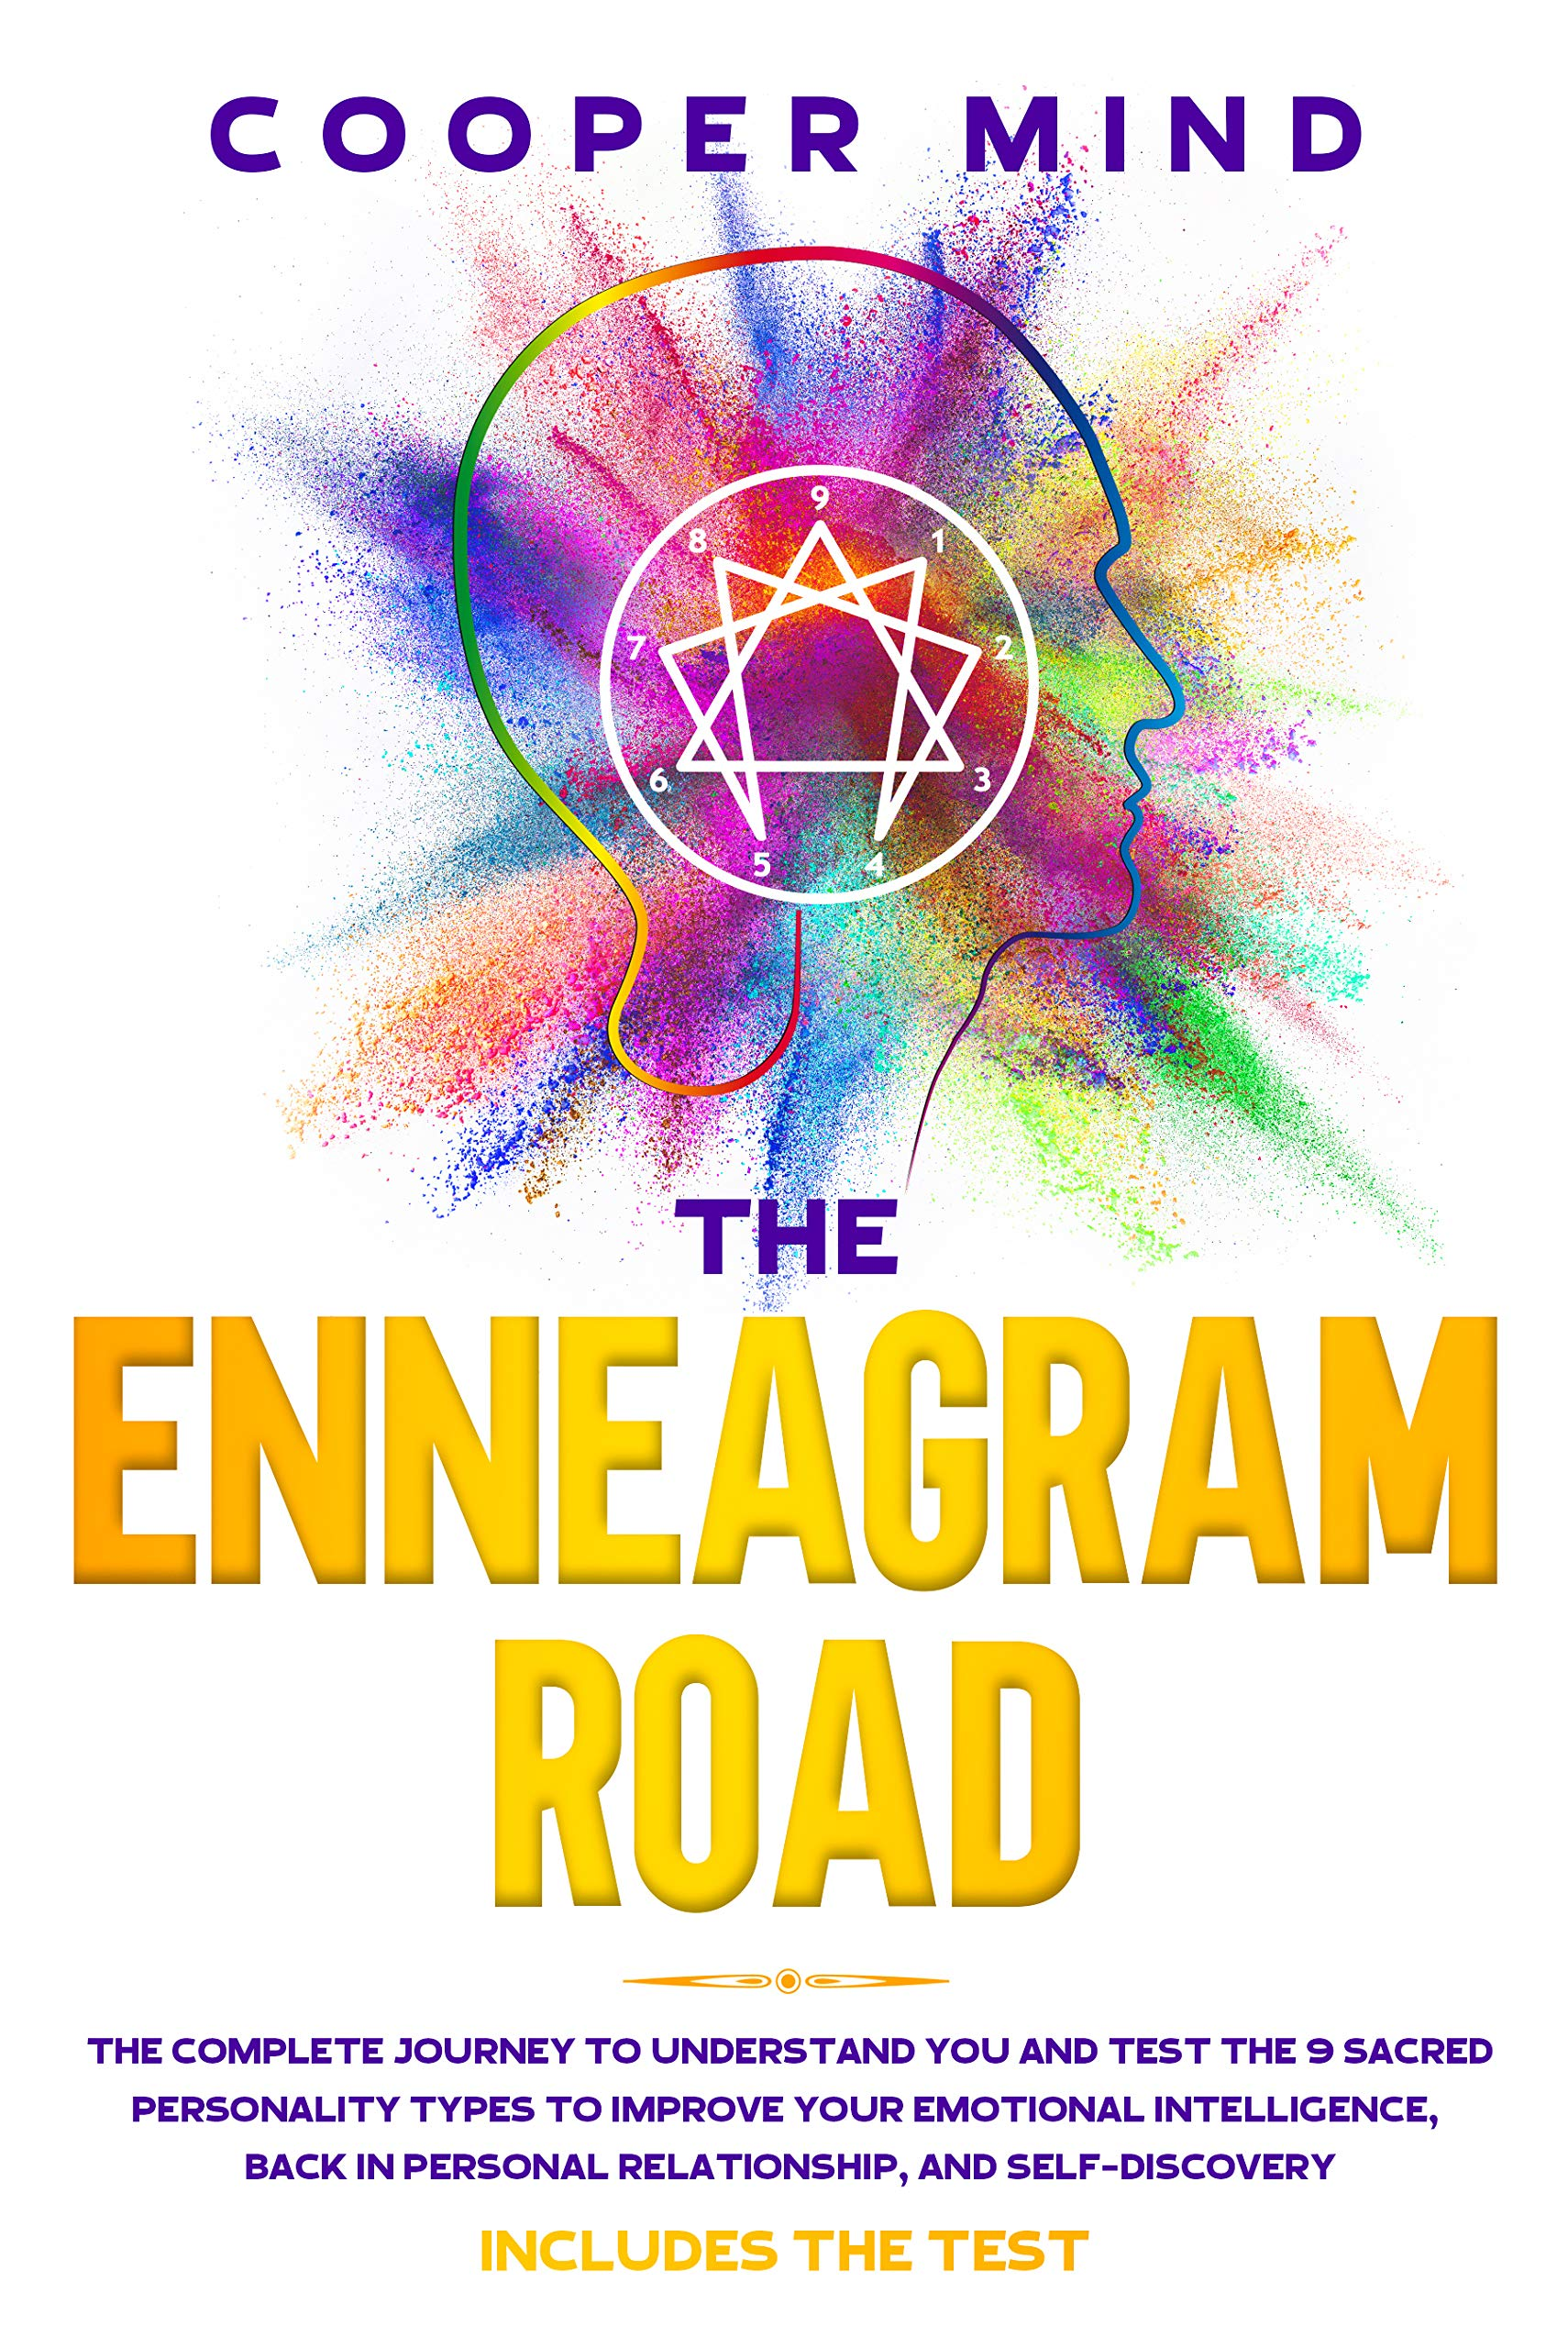 The Enneagram Road  The Complete Journey To Understand You And Test The 9 Sacred Personality Types To Improve Your Emotional Intelligence Back In Personal ... And Self – Discovery  English Edition